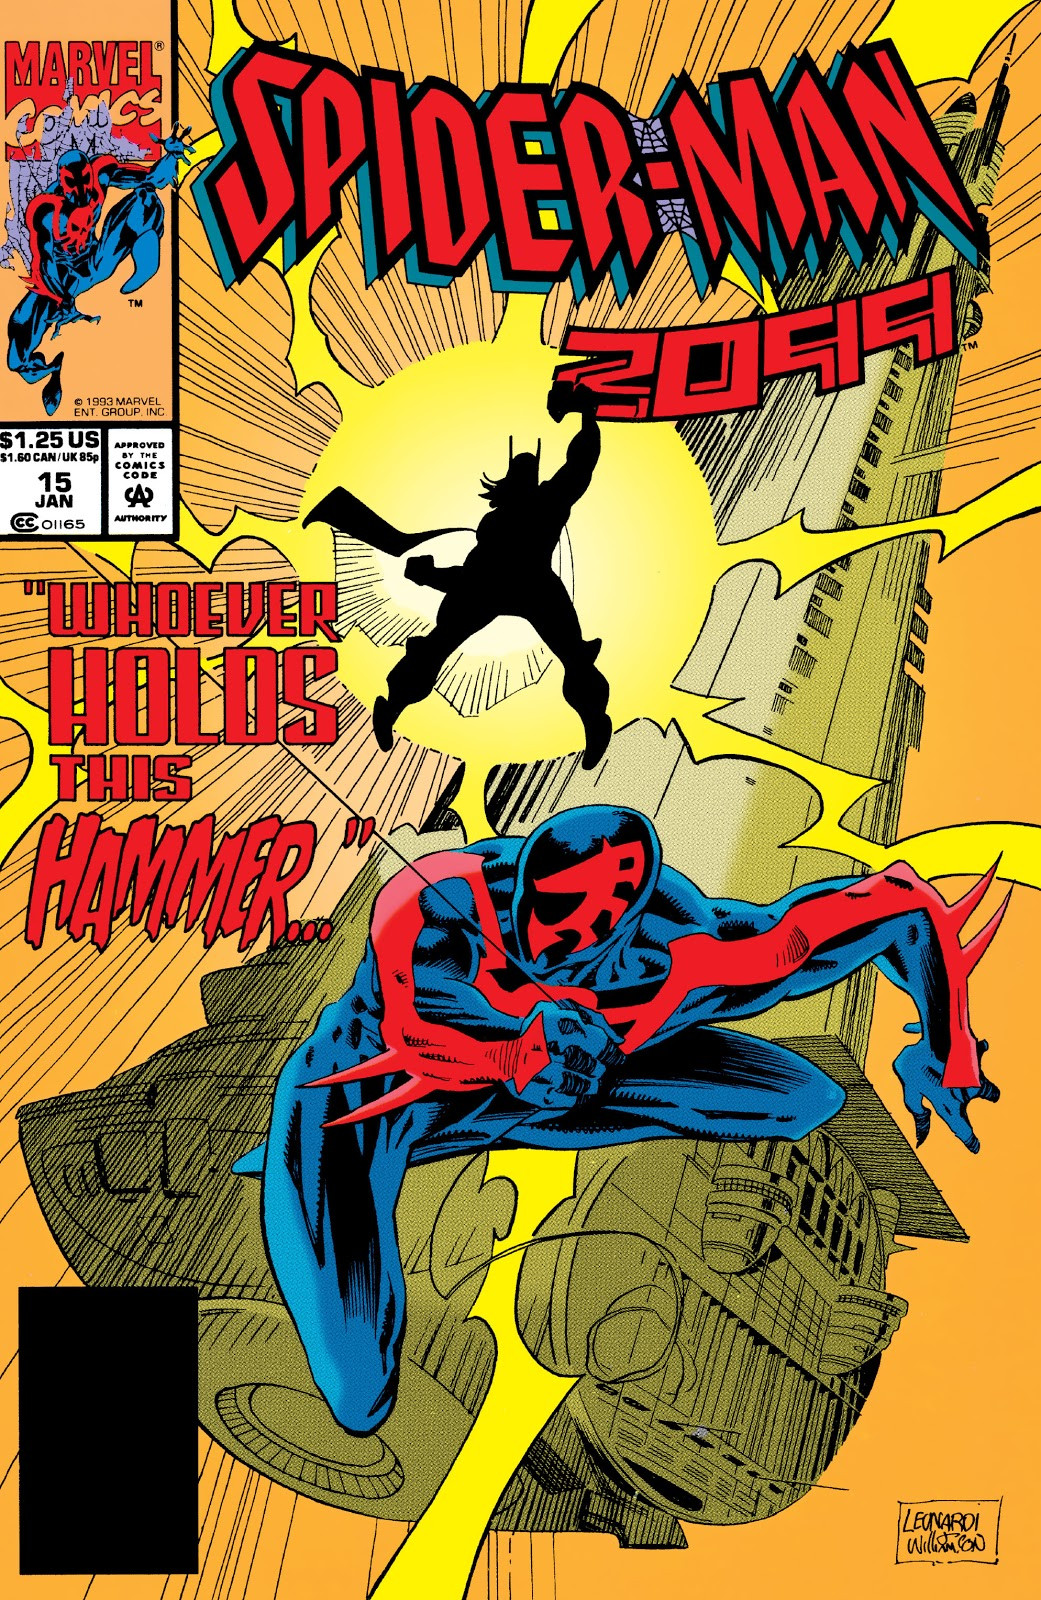 Spider-Man 2099 Vol 1 15